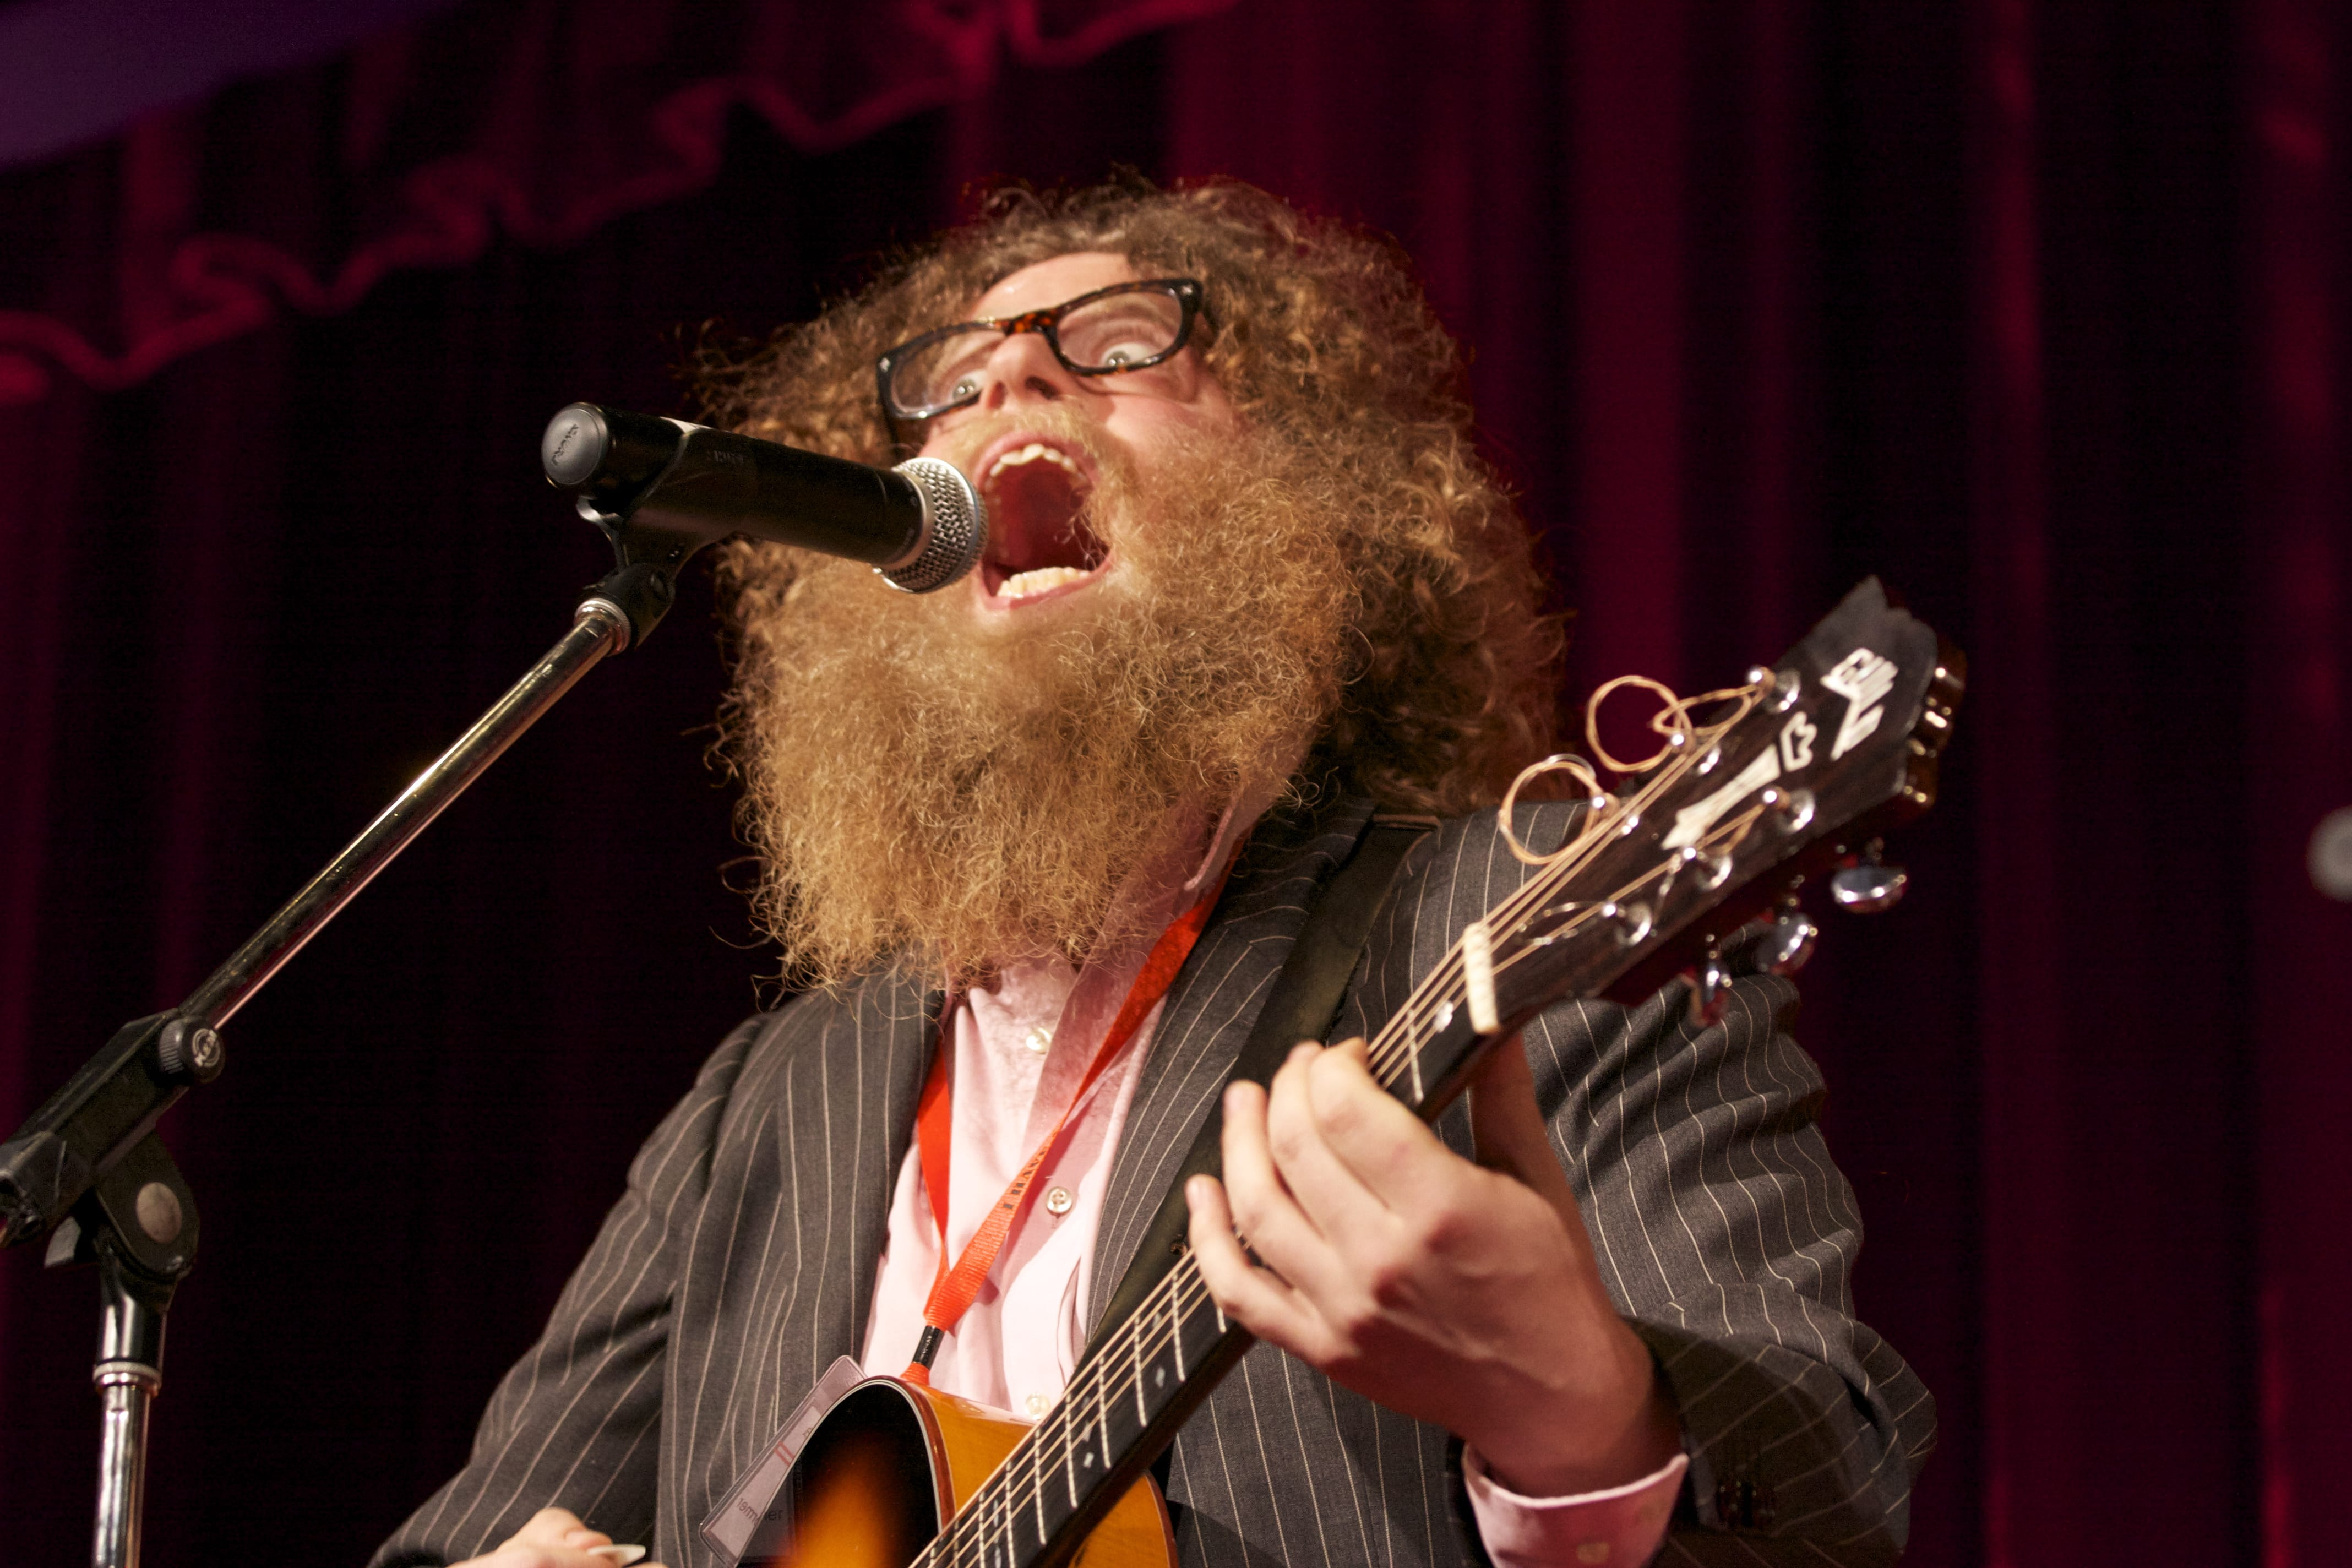 The first Ben Caplan article that does not mention his facial hair